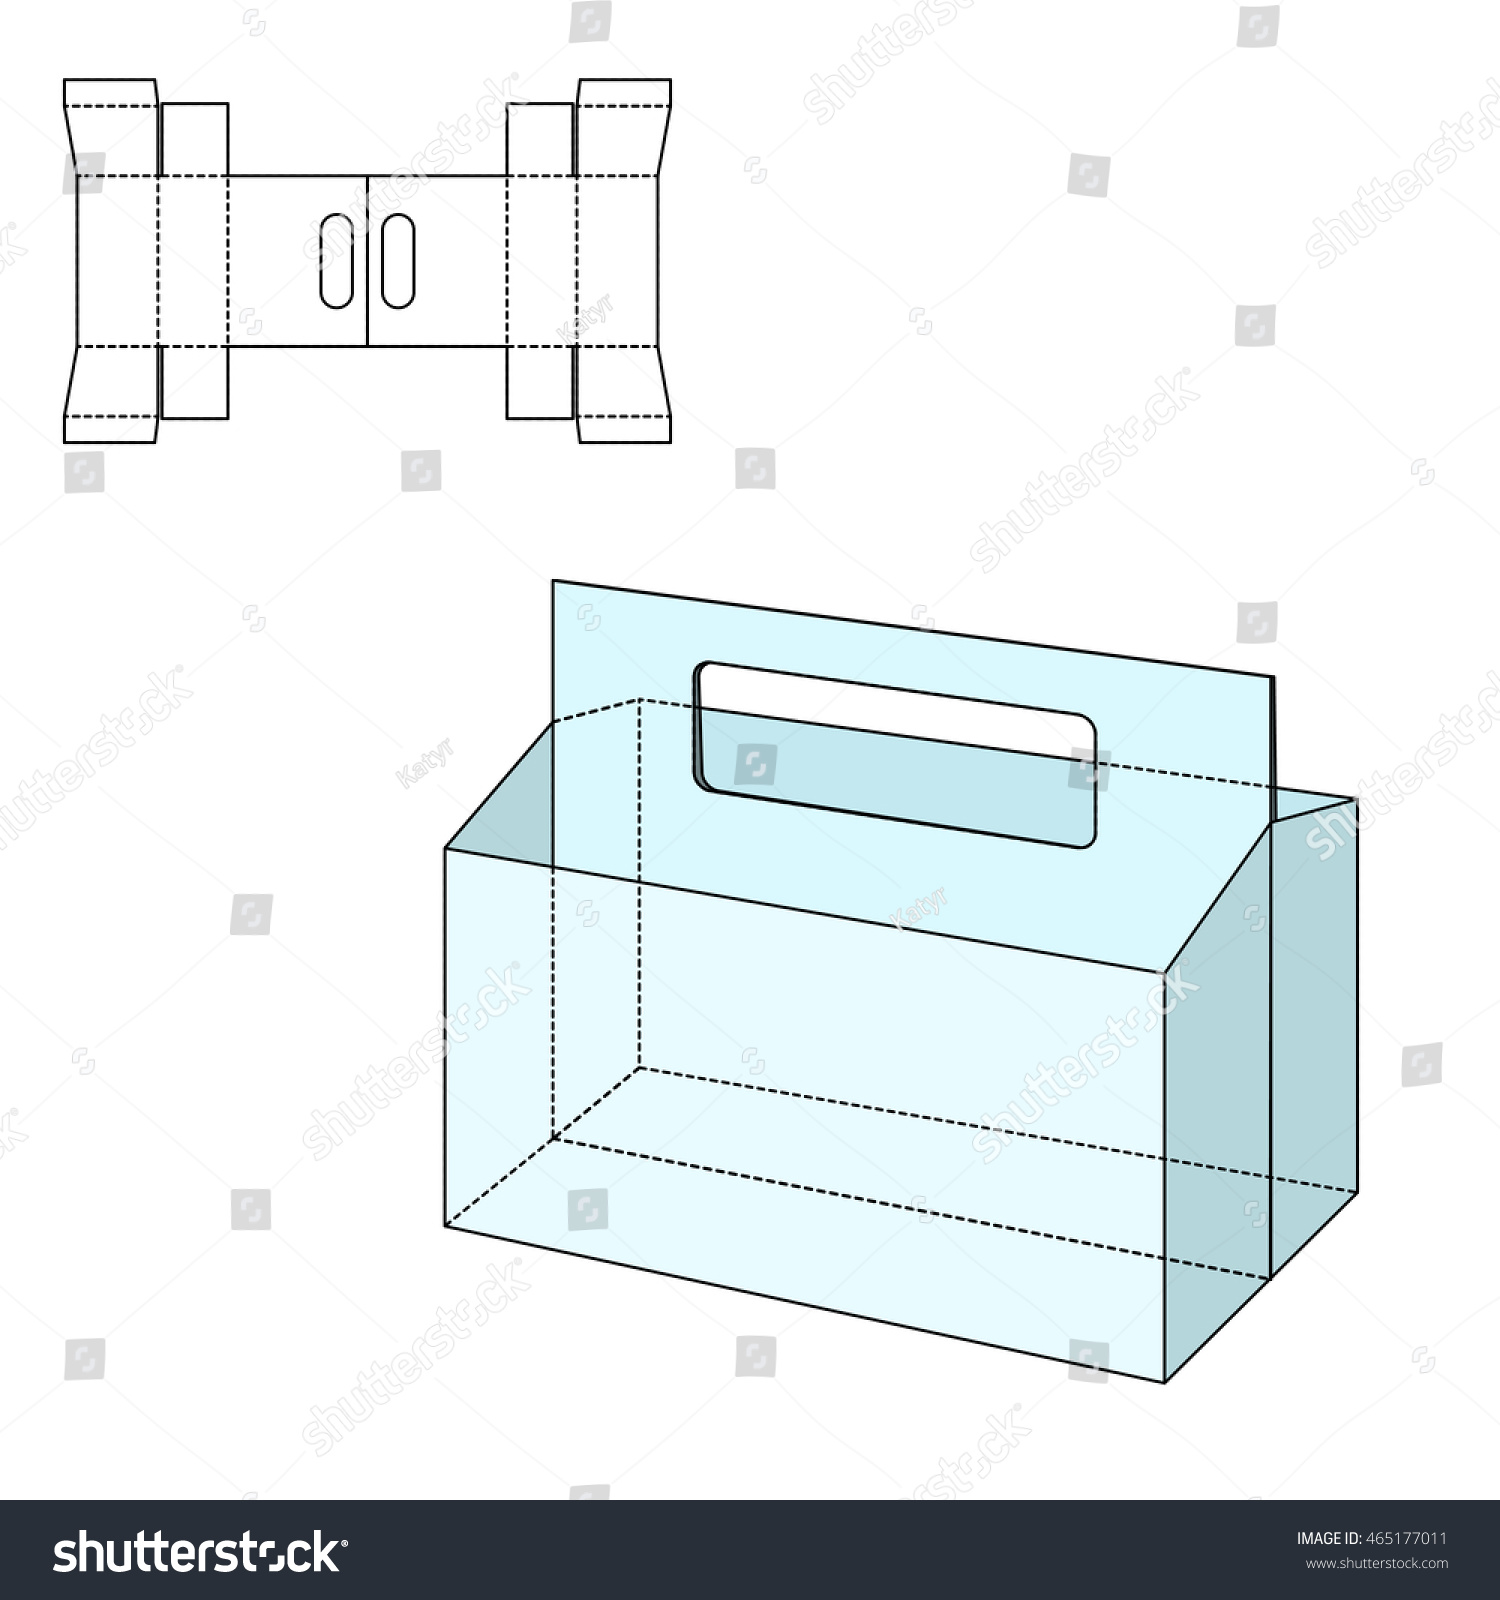 hight resolution of beer box diagram electrical engineering wiring diagrambeer box diagram wiring diagramroyalty free stock illustration of illustration